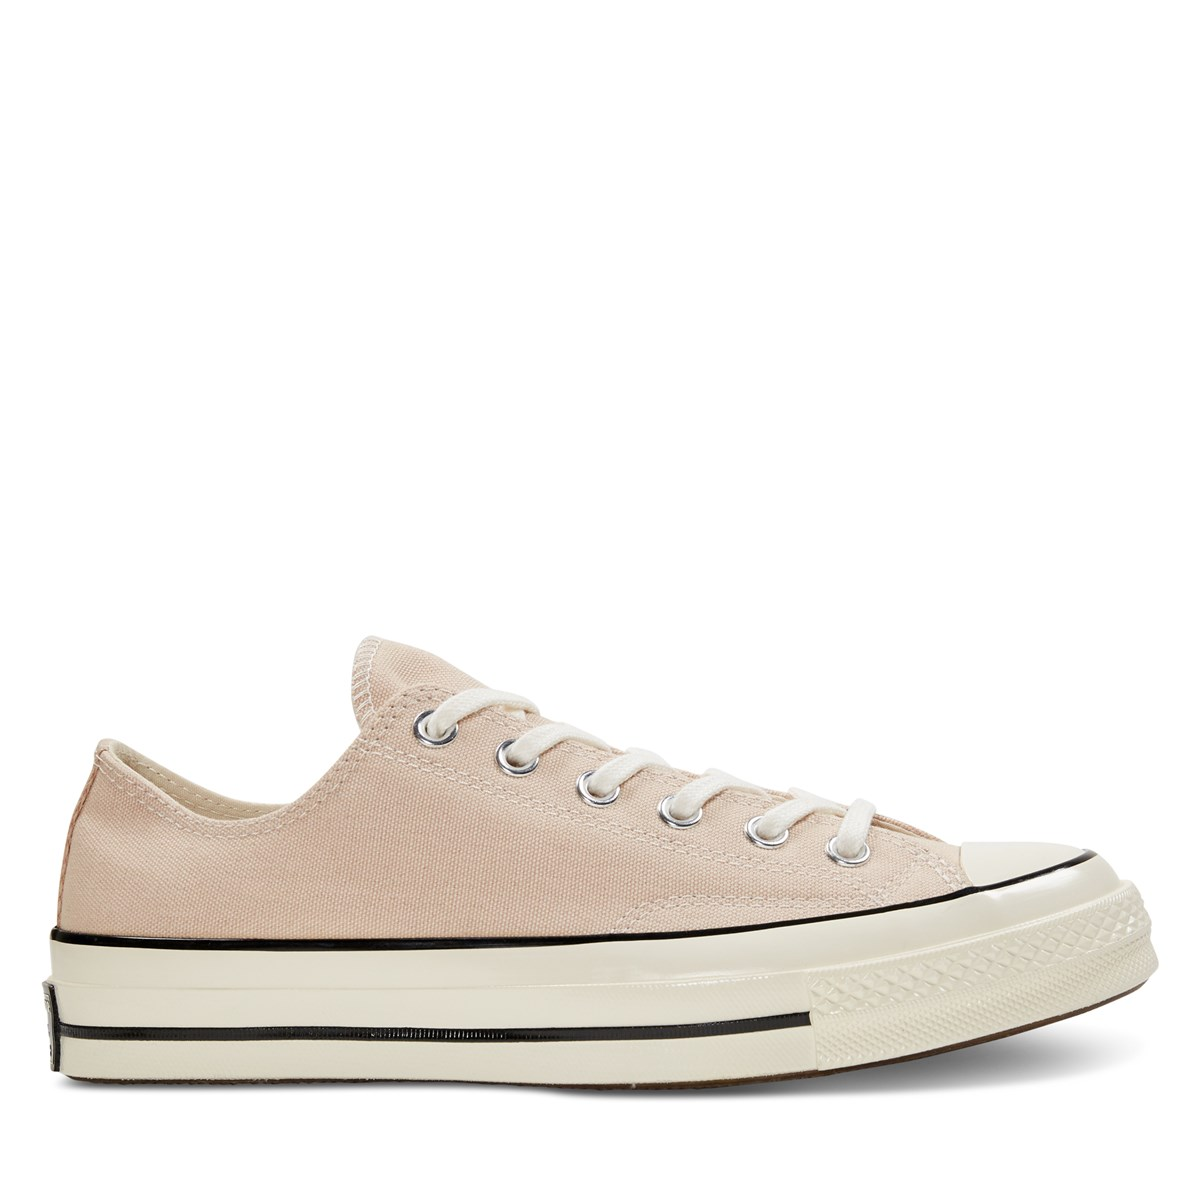 Women's Chuck Taylor All Star 70 Vintage Low Top Sneakers in Light Pink